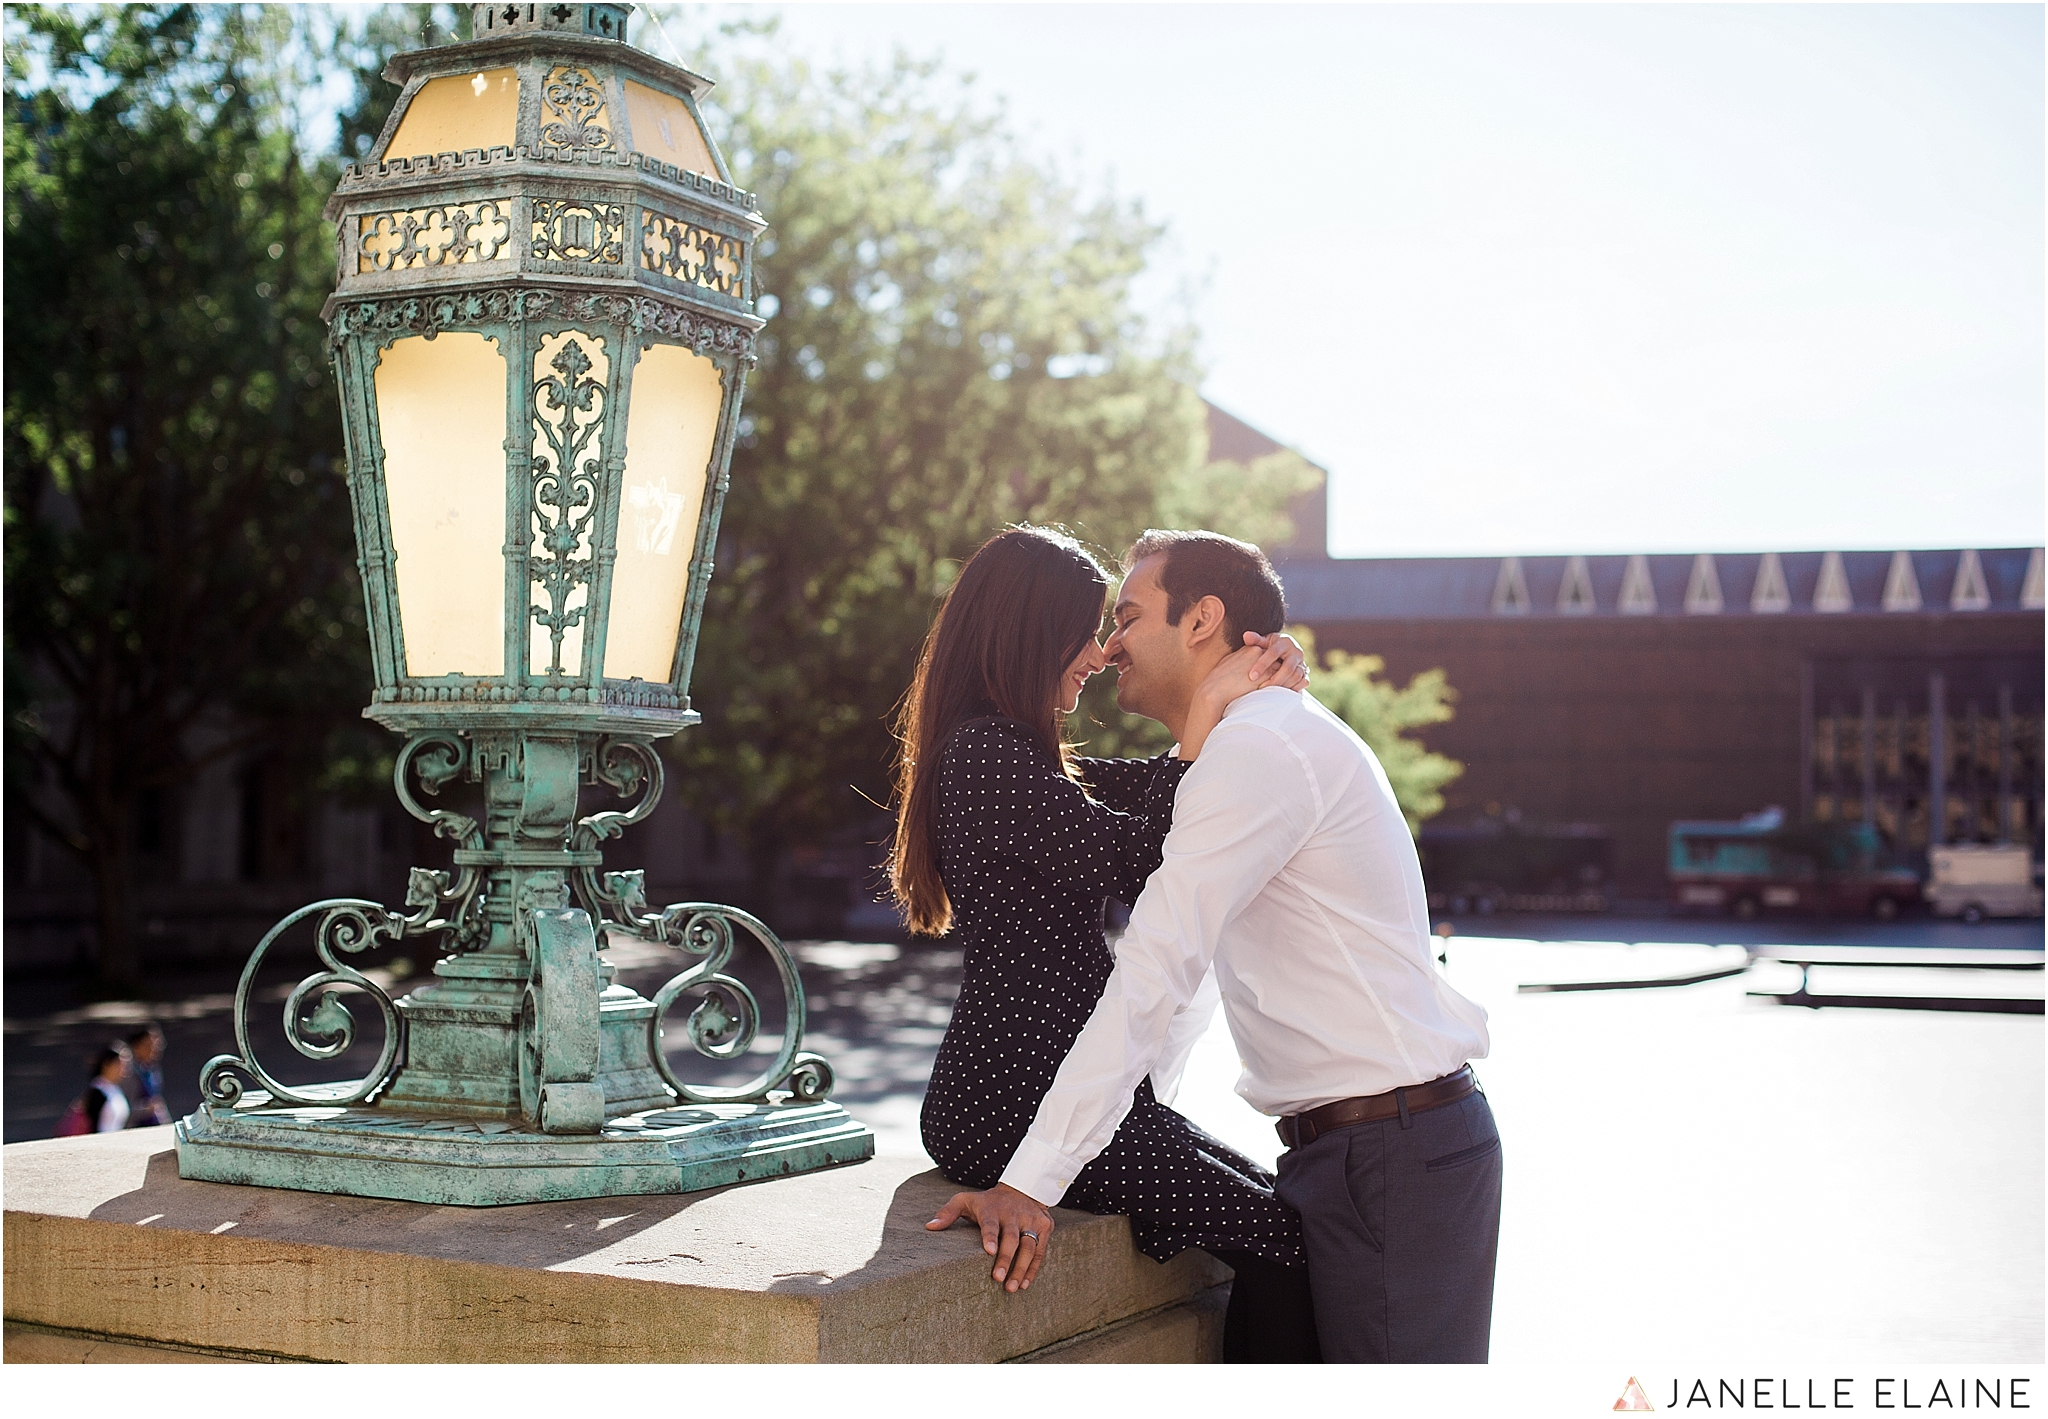 janelle elaine photography-zain and umema-seattle-uw-red square-engagement-photographer-149.jpg